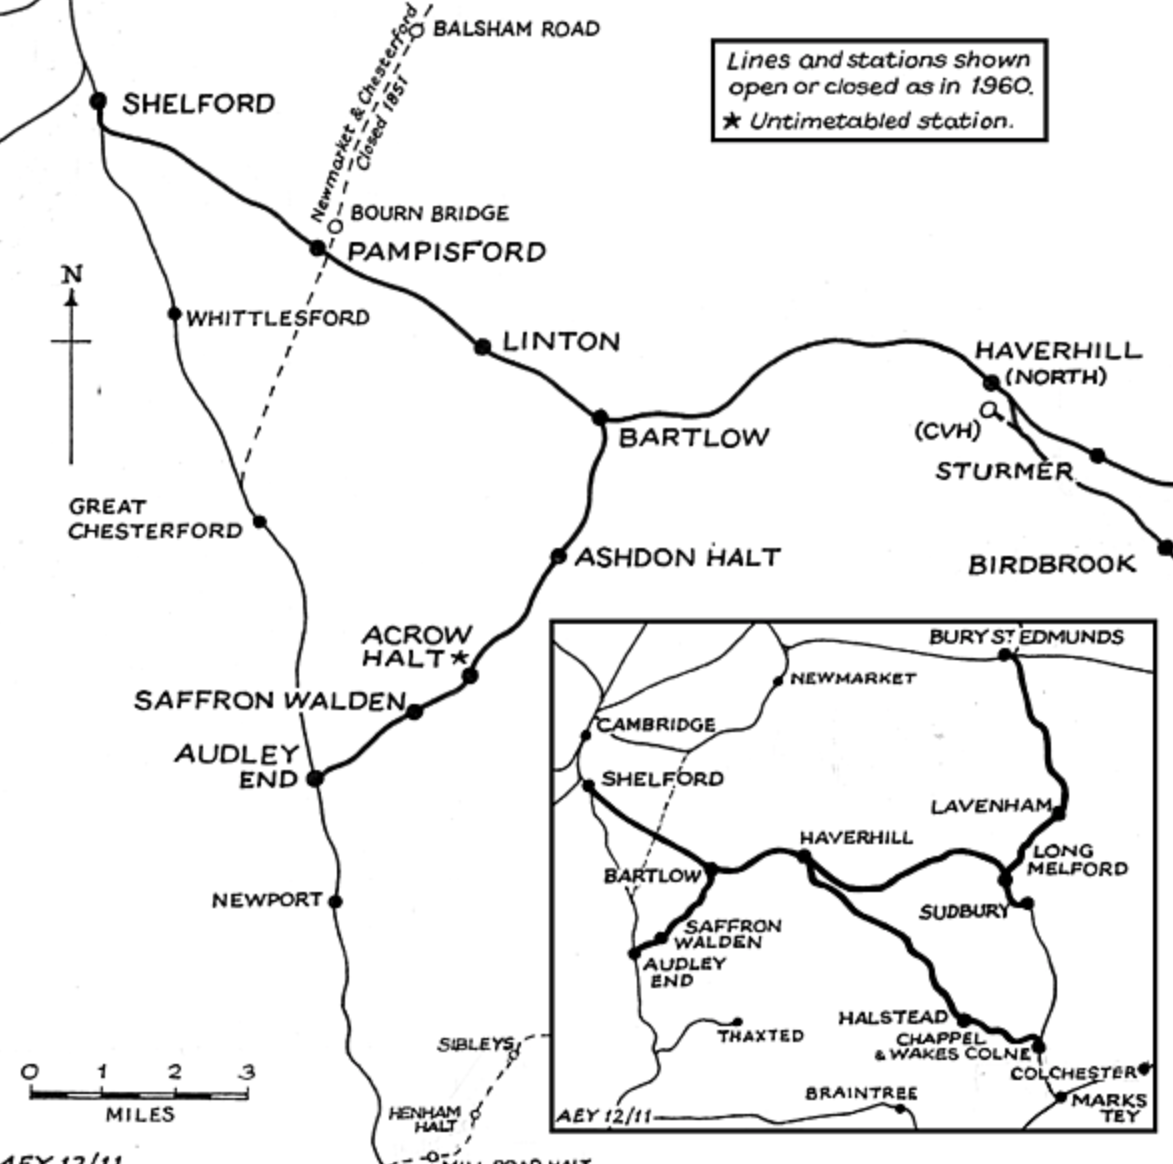 The line of the station between Audley End and Bartlow with other station lines for reference. Taken from Disused Railways website.